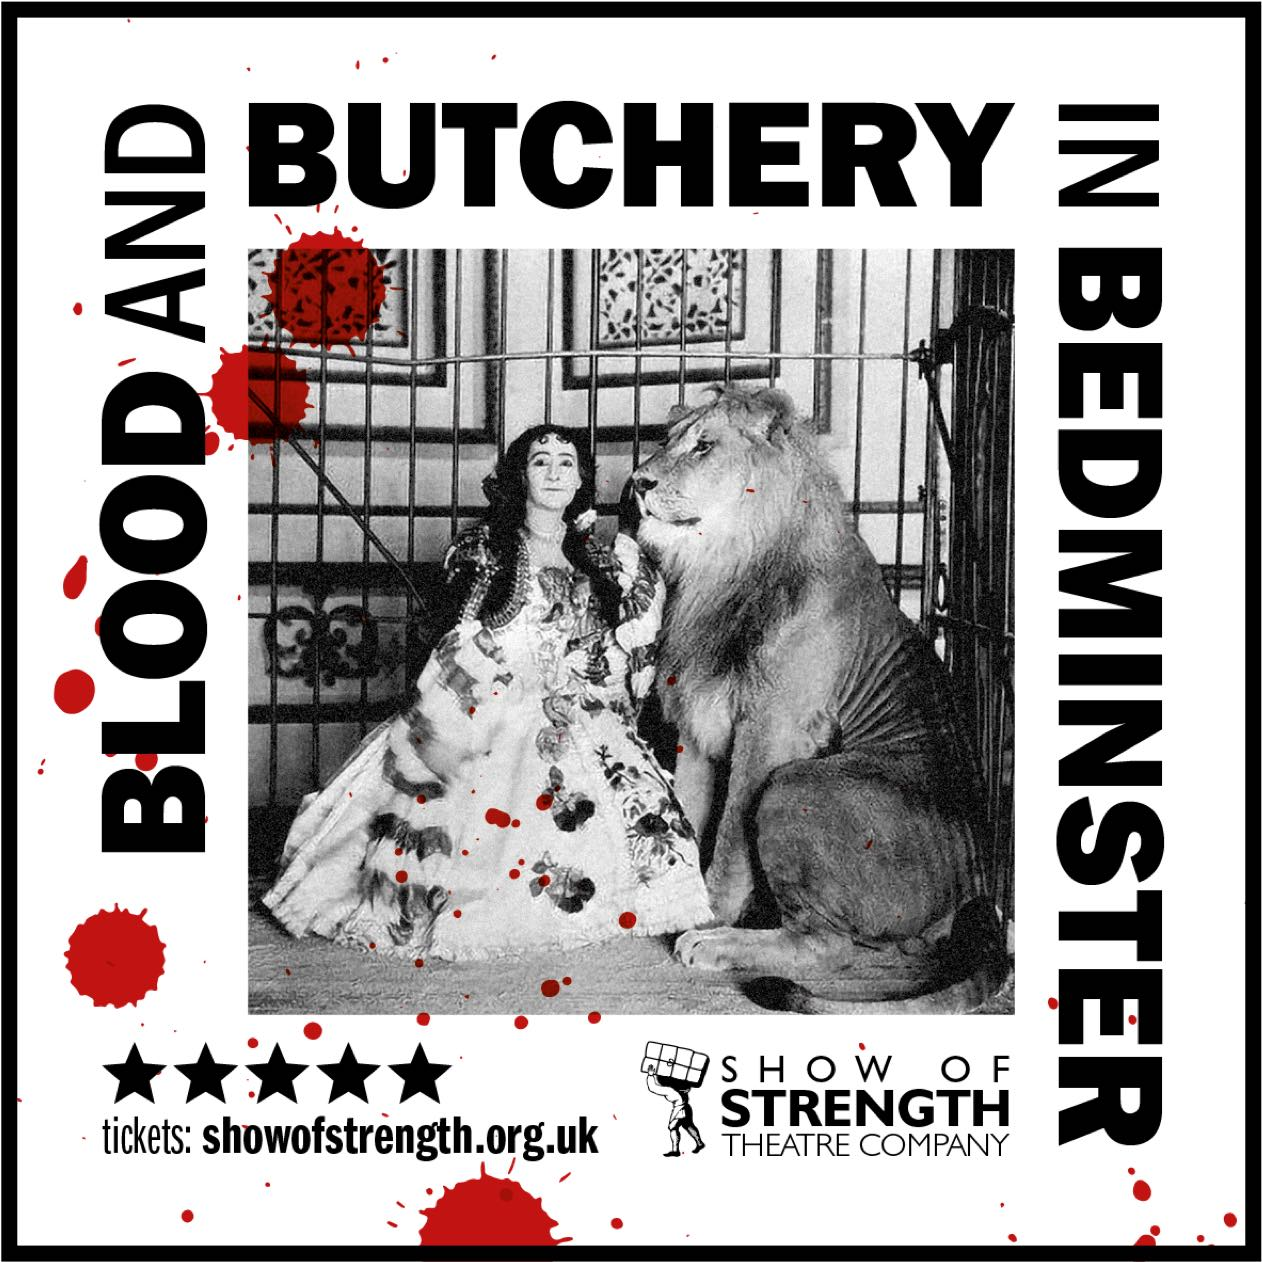 Blood and Butchery in Bedminster